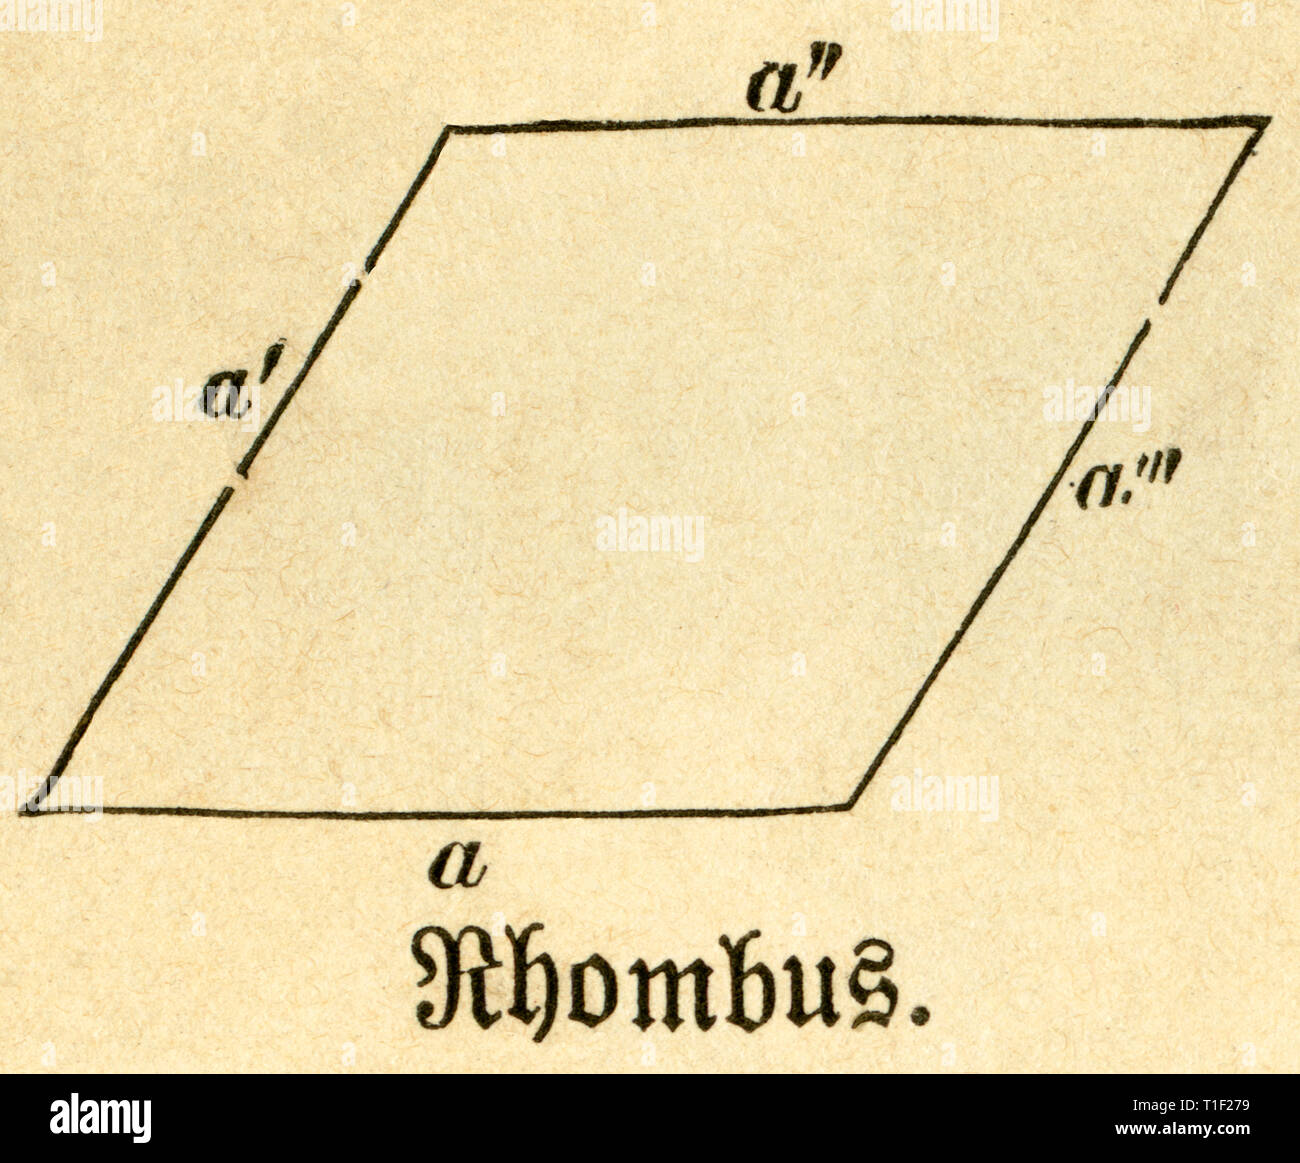 "Rhombus, illustration from: ""Die Welt in Bildern "" (images of the world), published by Dr. Chr. G. Hottinger in self-publishing, Berlin / Strasbourg, 1881., Additional-Rights-Clearance-Info-Not-Available Stock Photo"